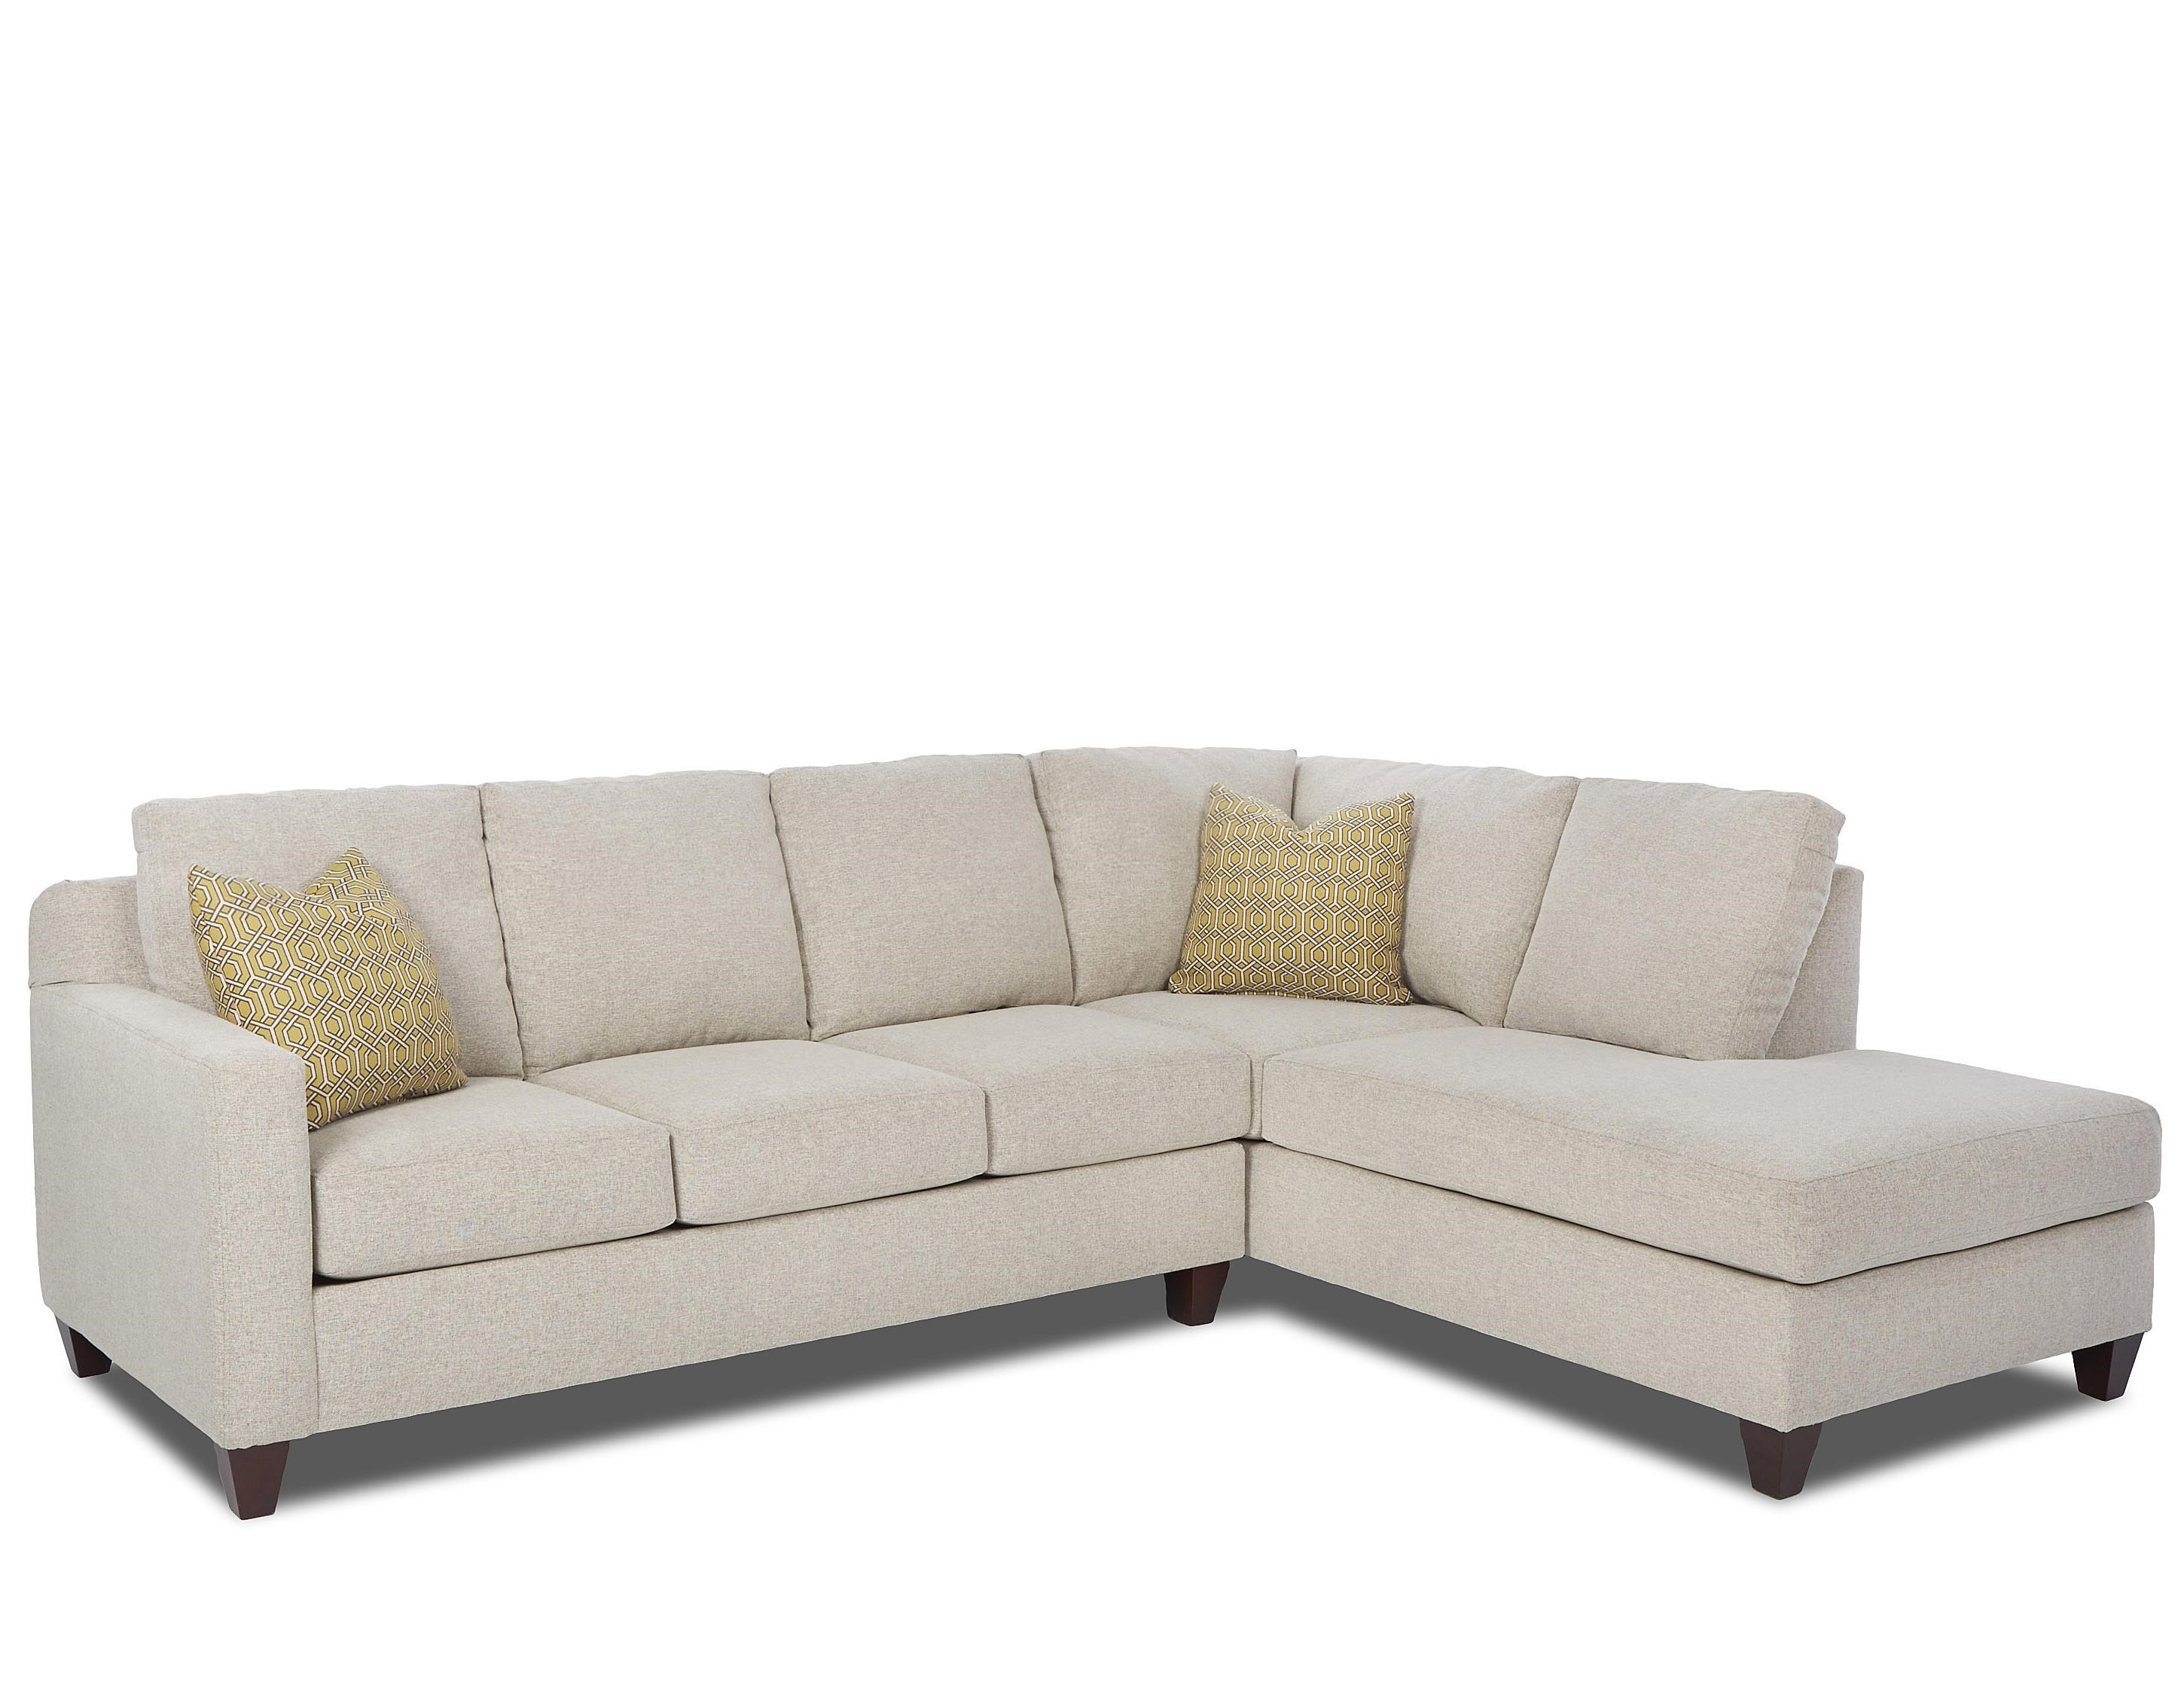 Contemporary 2-Piece Sectional with Right Arm Facing Sofa Chaise